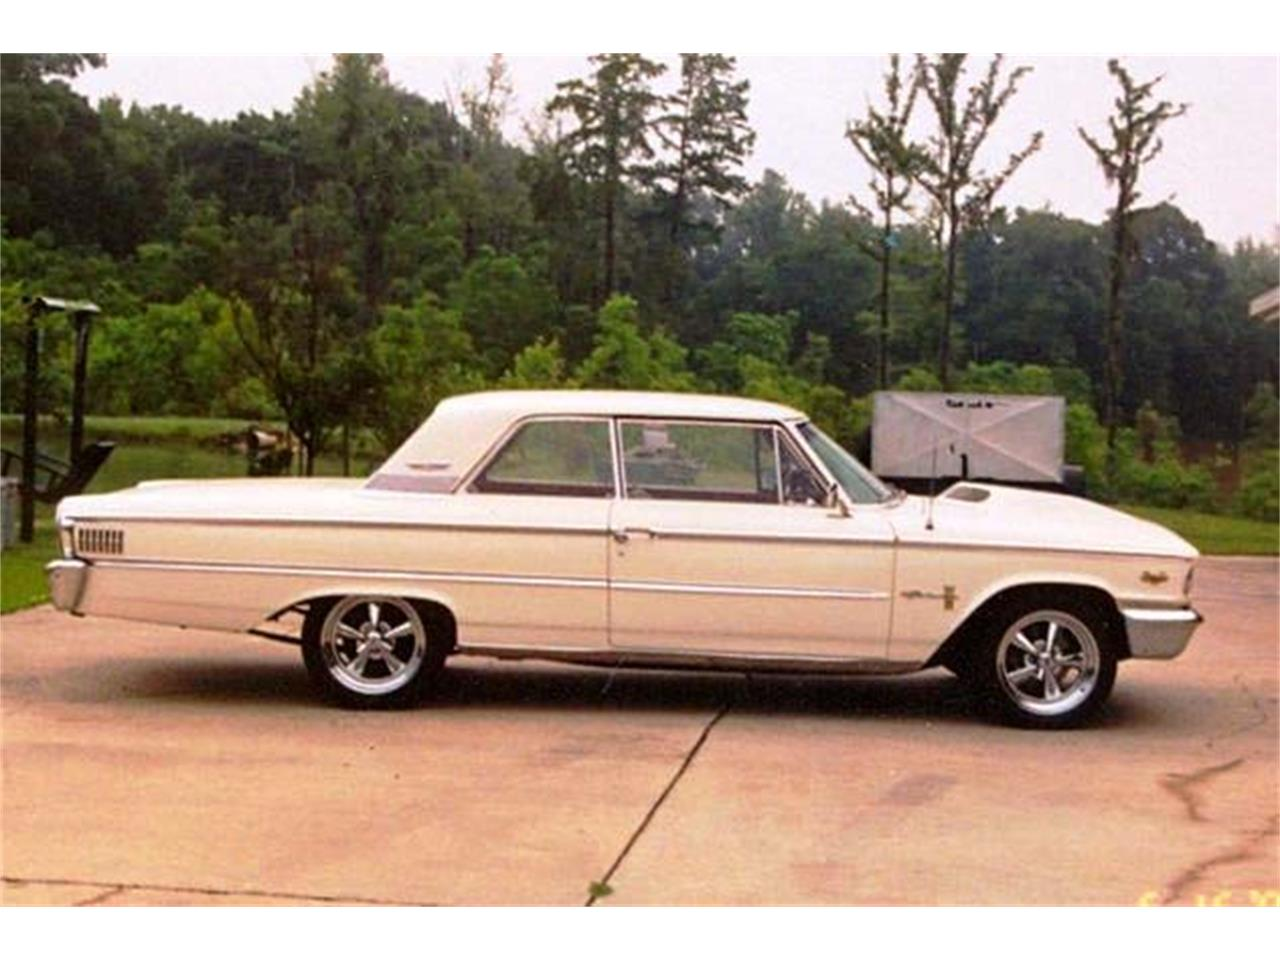 Large picture of 63 galaxie 500 mbfq